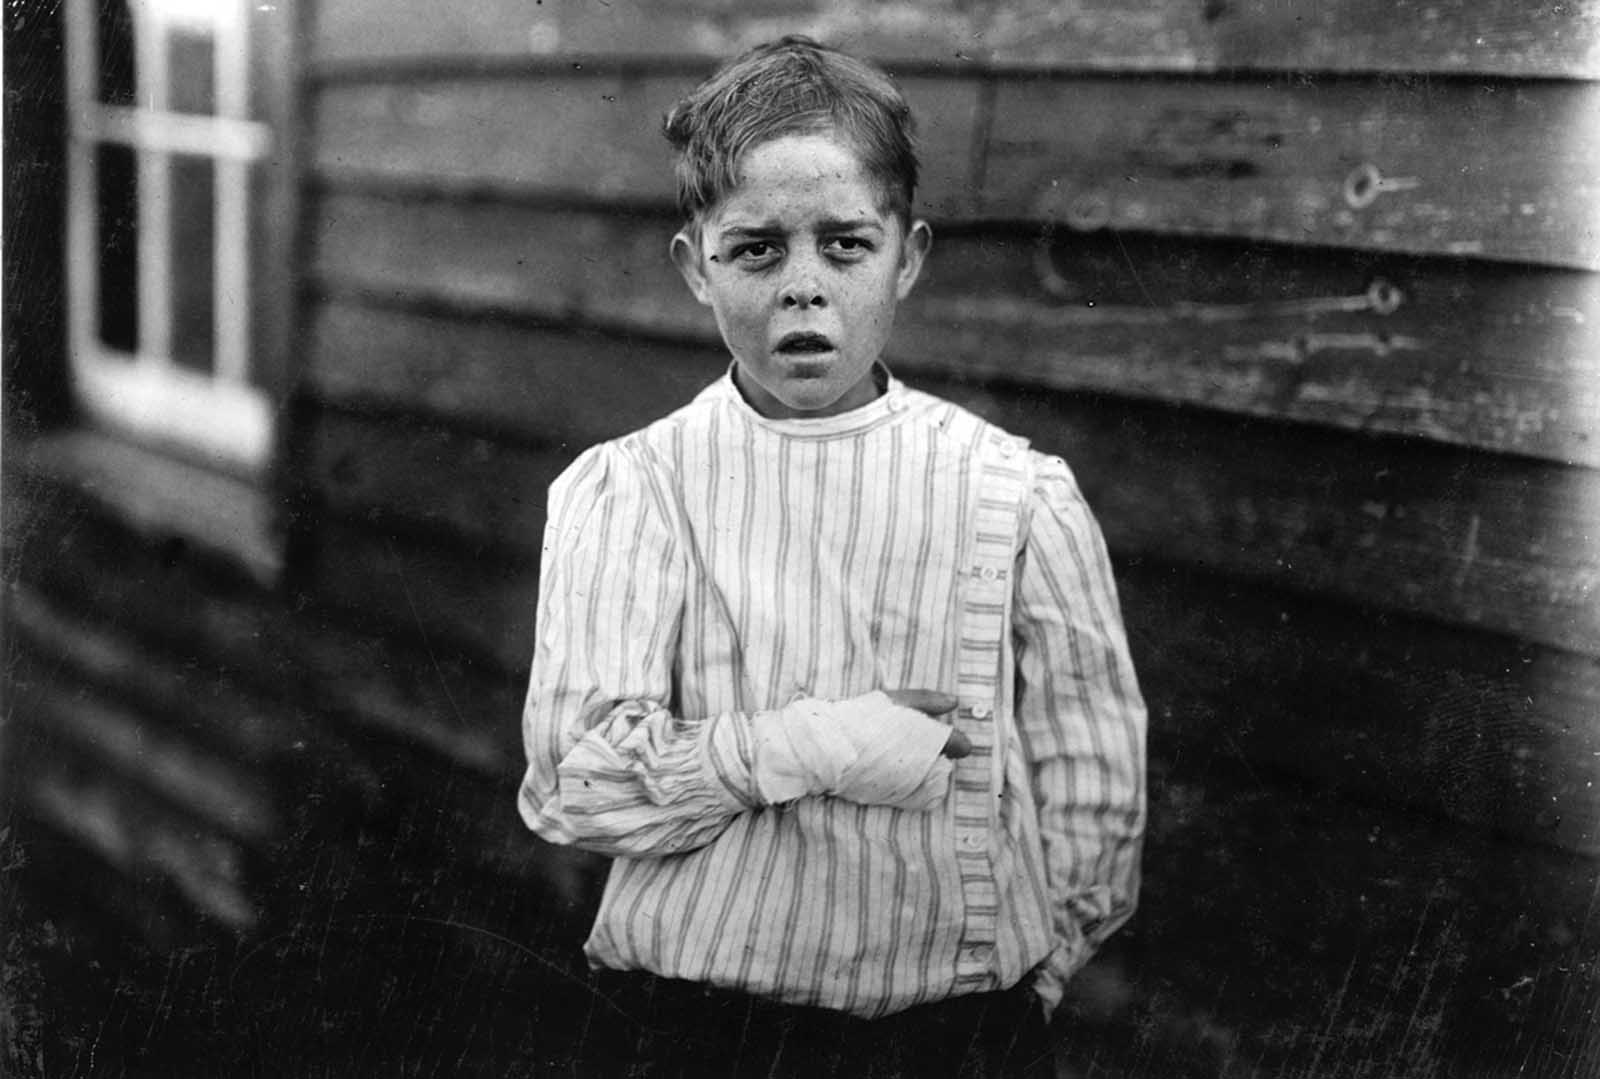 An injured young mill worker. Giles Edmund Newsom, photographed on October 23, 1912. Giles was injured while working in Sanders Spinning Mill in Bessemer City, North Carolina, on August 21st, 1912. A piece of machinery fell on his foot, mashing his toe. This caused him to fall onto a spinning machine and his hand went into unprotected gearing, crushing and tearing out two fingers. He told the investigating attorney that he was 11 years old when it happened. He and his younger brother worked in the mill several months before the accident. Their father, R.L. Newsom, tried to compromise with the company when he found the boy would receive the money and not the parents. Their mother tried to blame the boys for getting jobs on their own, but she let them work several months. Their aunt said